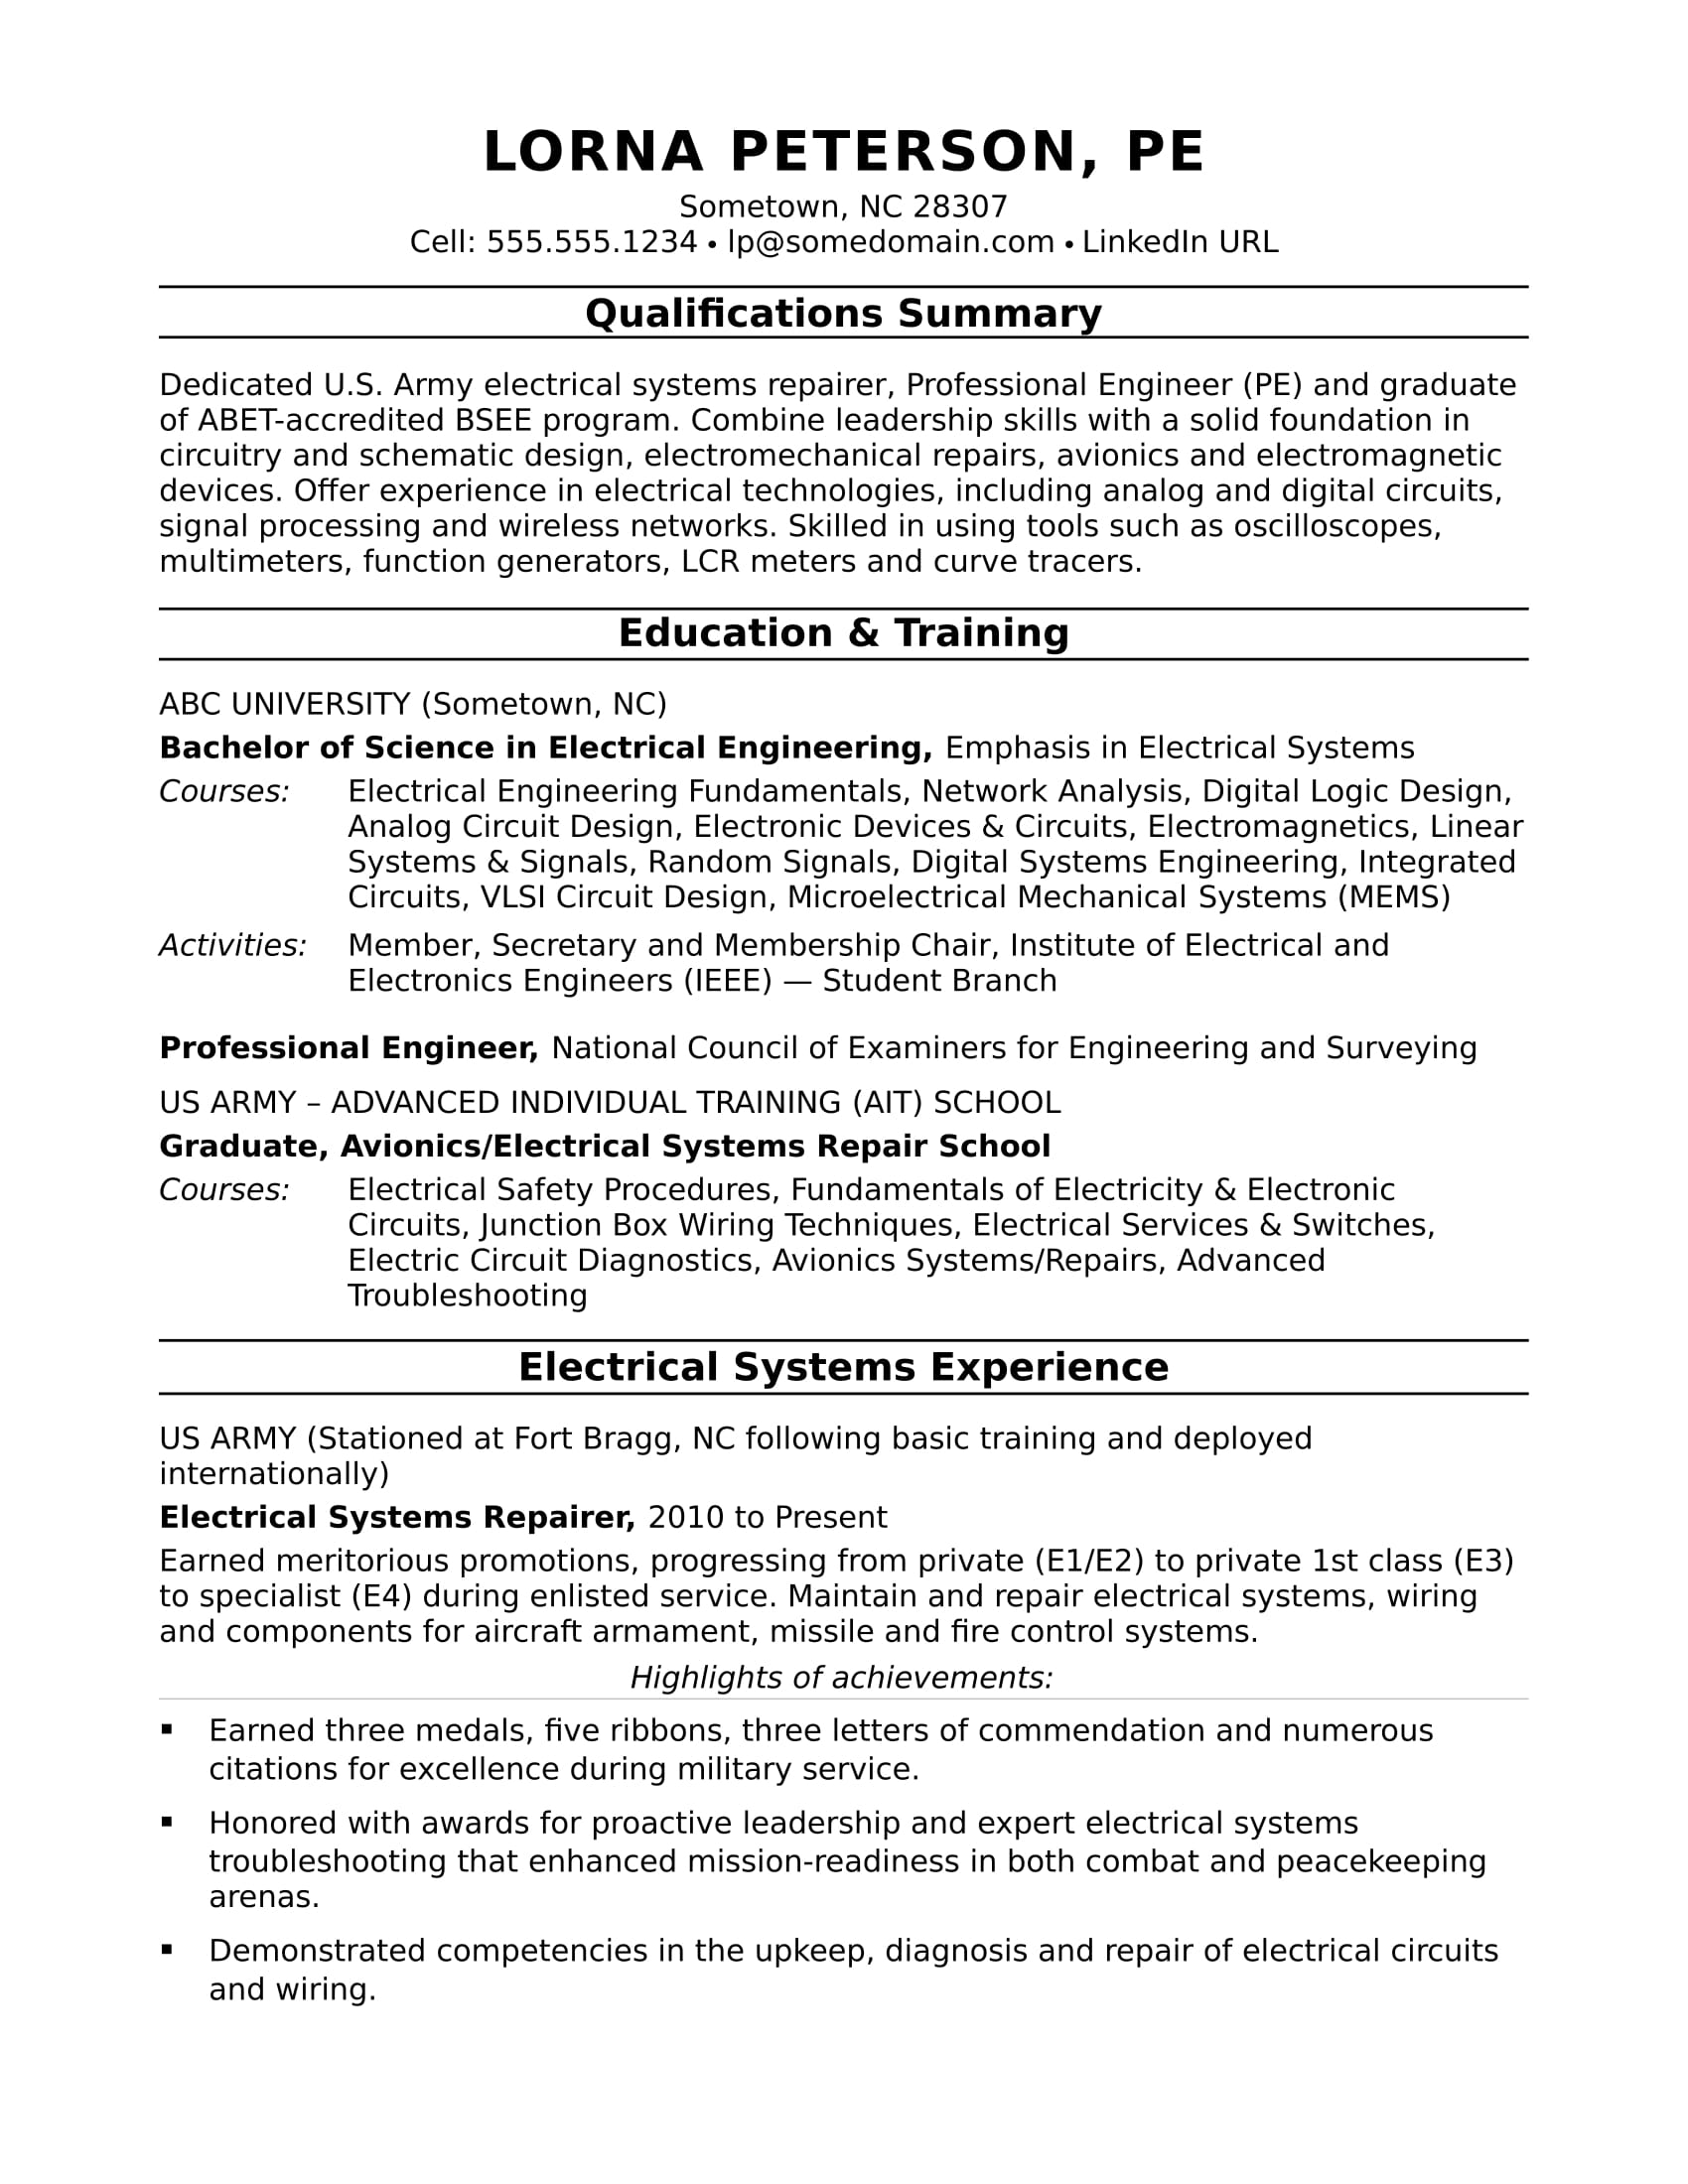 sample resume for a midlevel electrical engineer - Electrical Engineer Resume